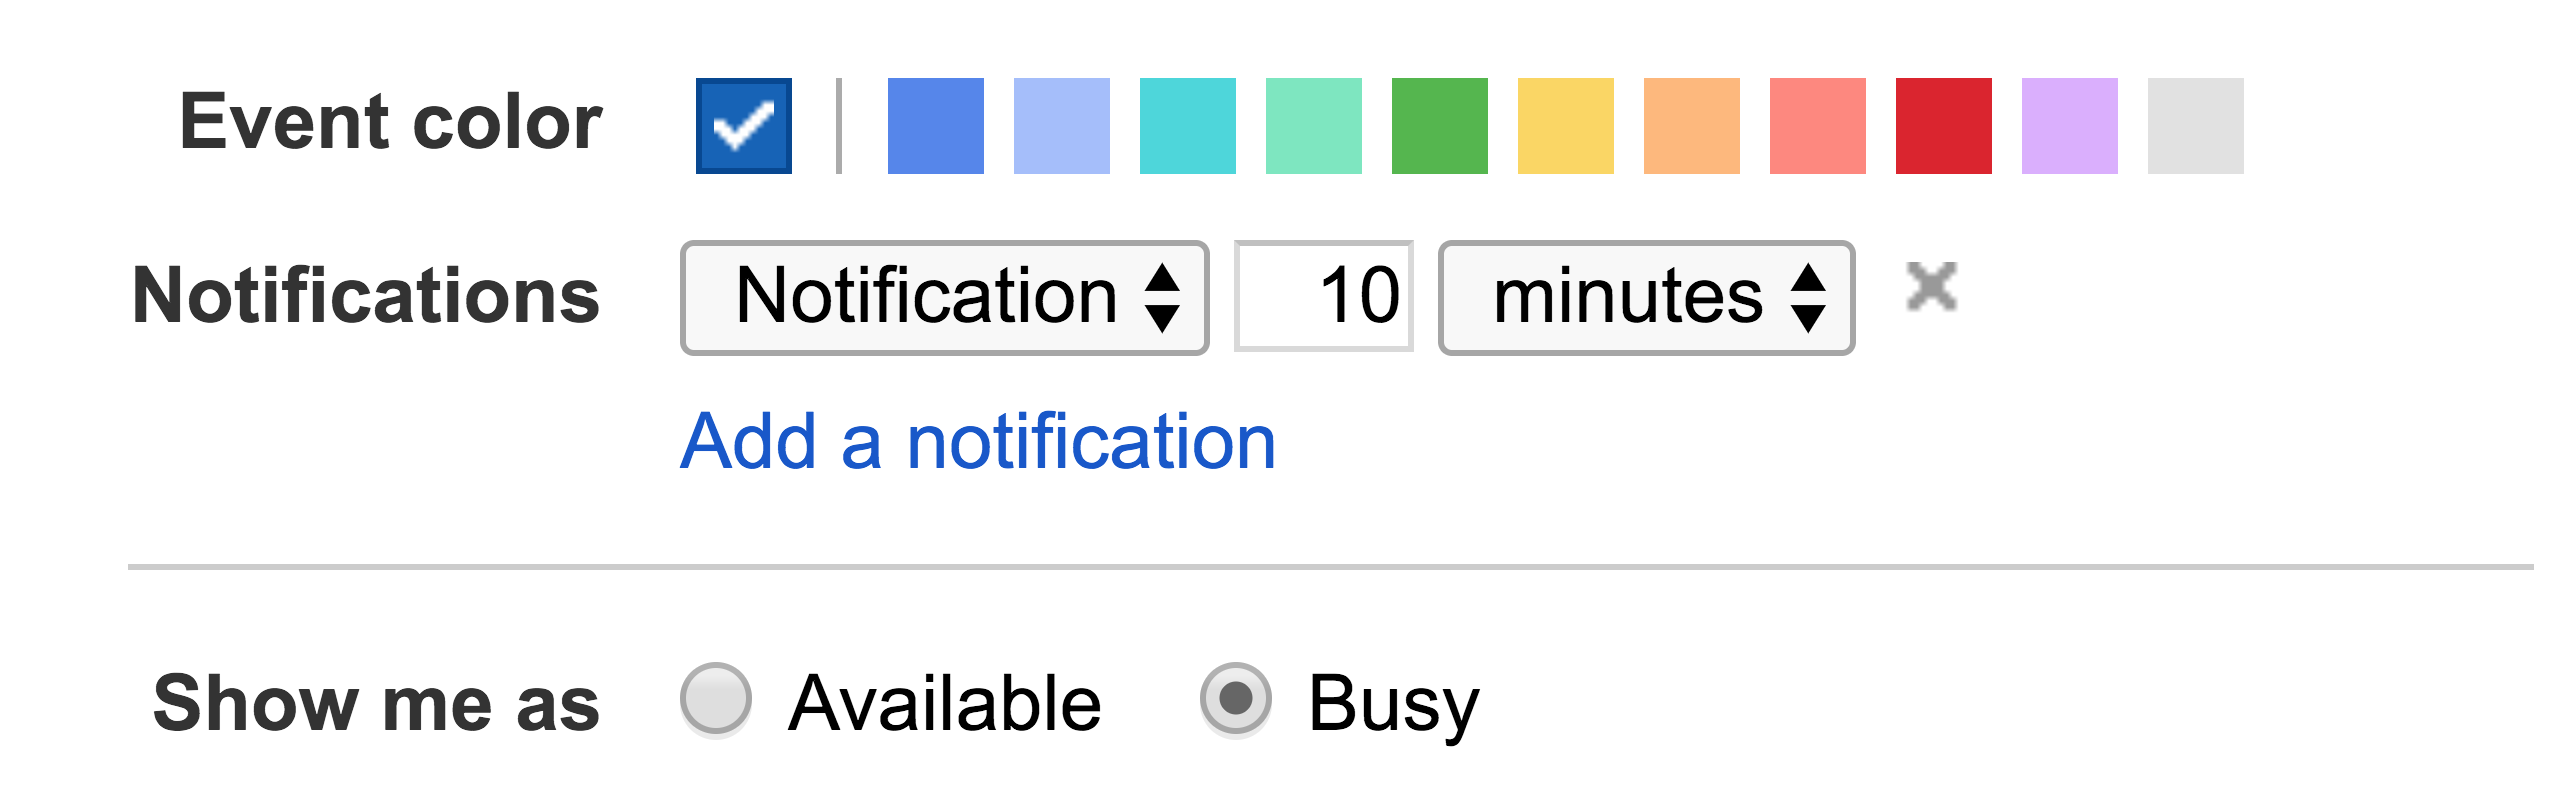 Old Google Calendar UI